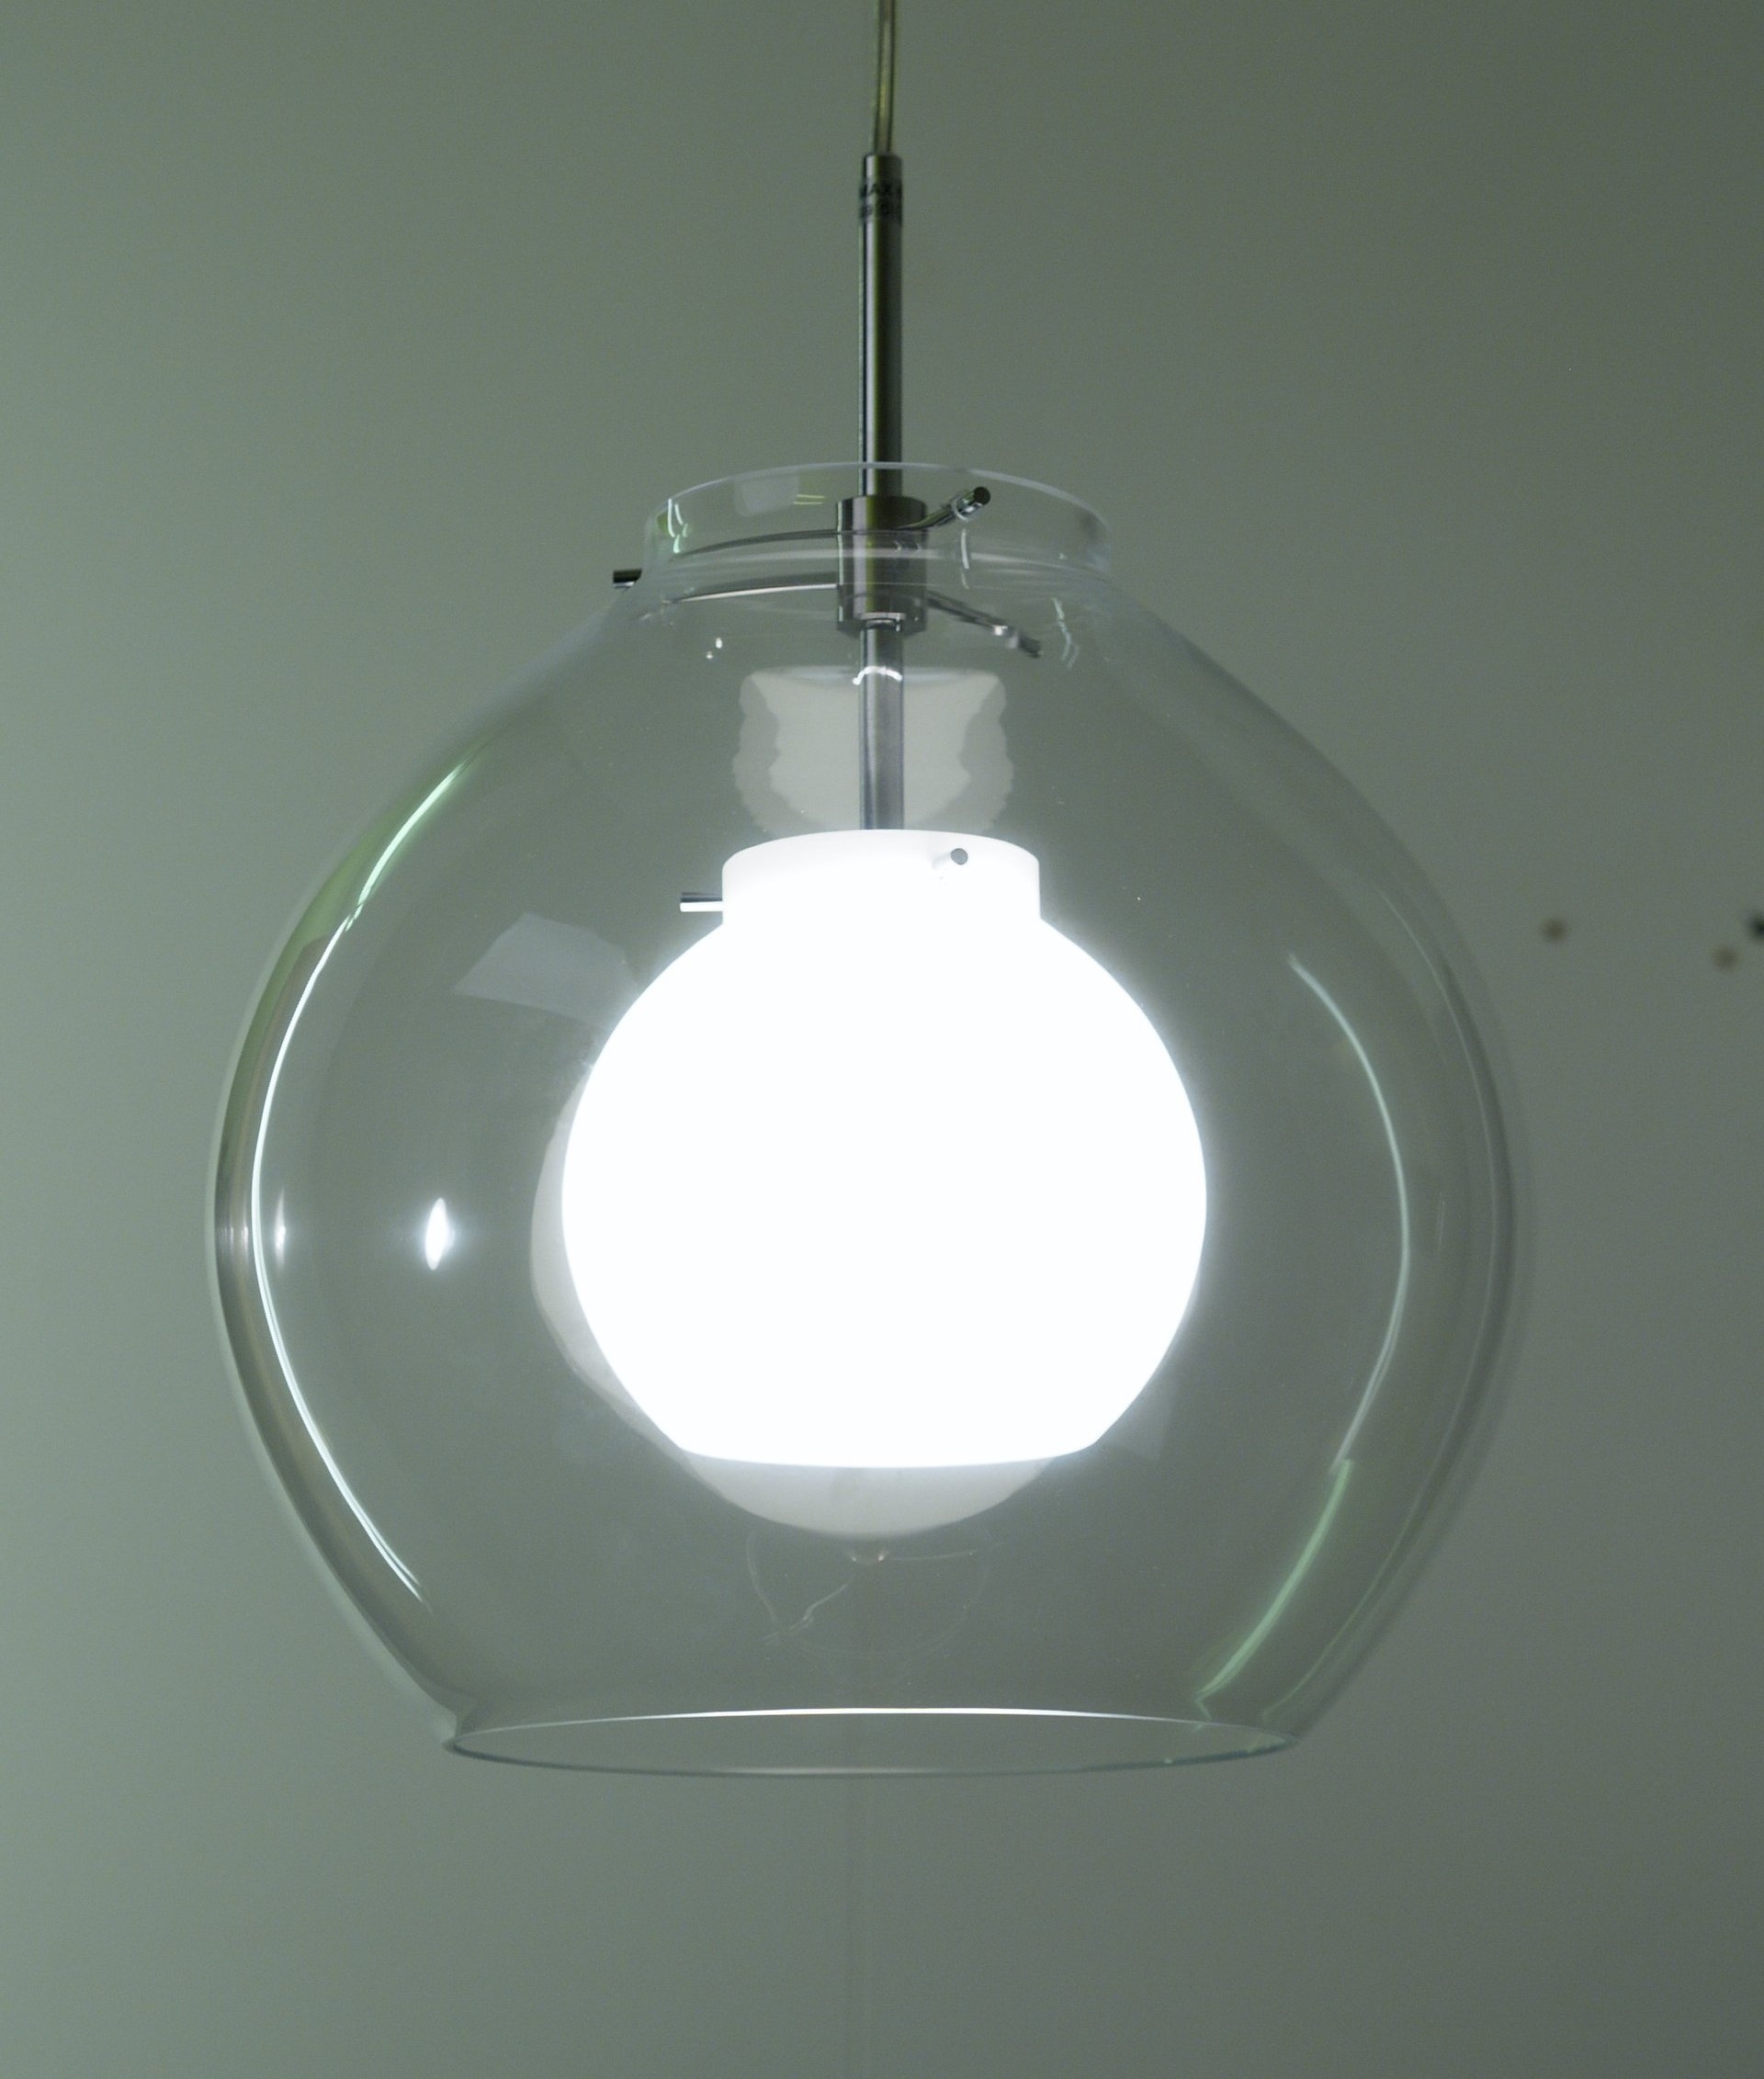 hurricane inspirations milk inch divine lamp globes shade light ceiling clear glass antique top ceilings hobnail lamps